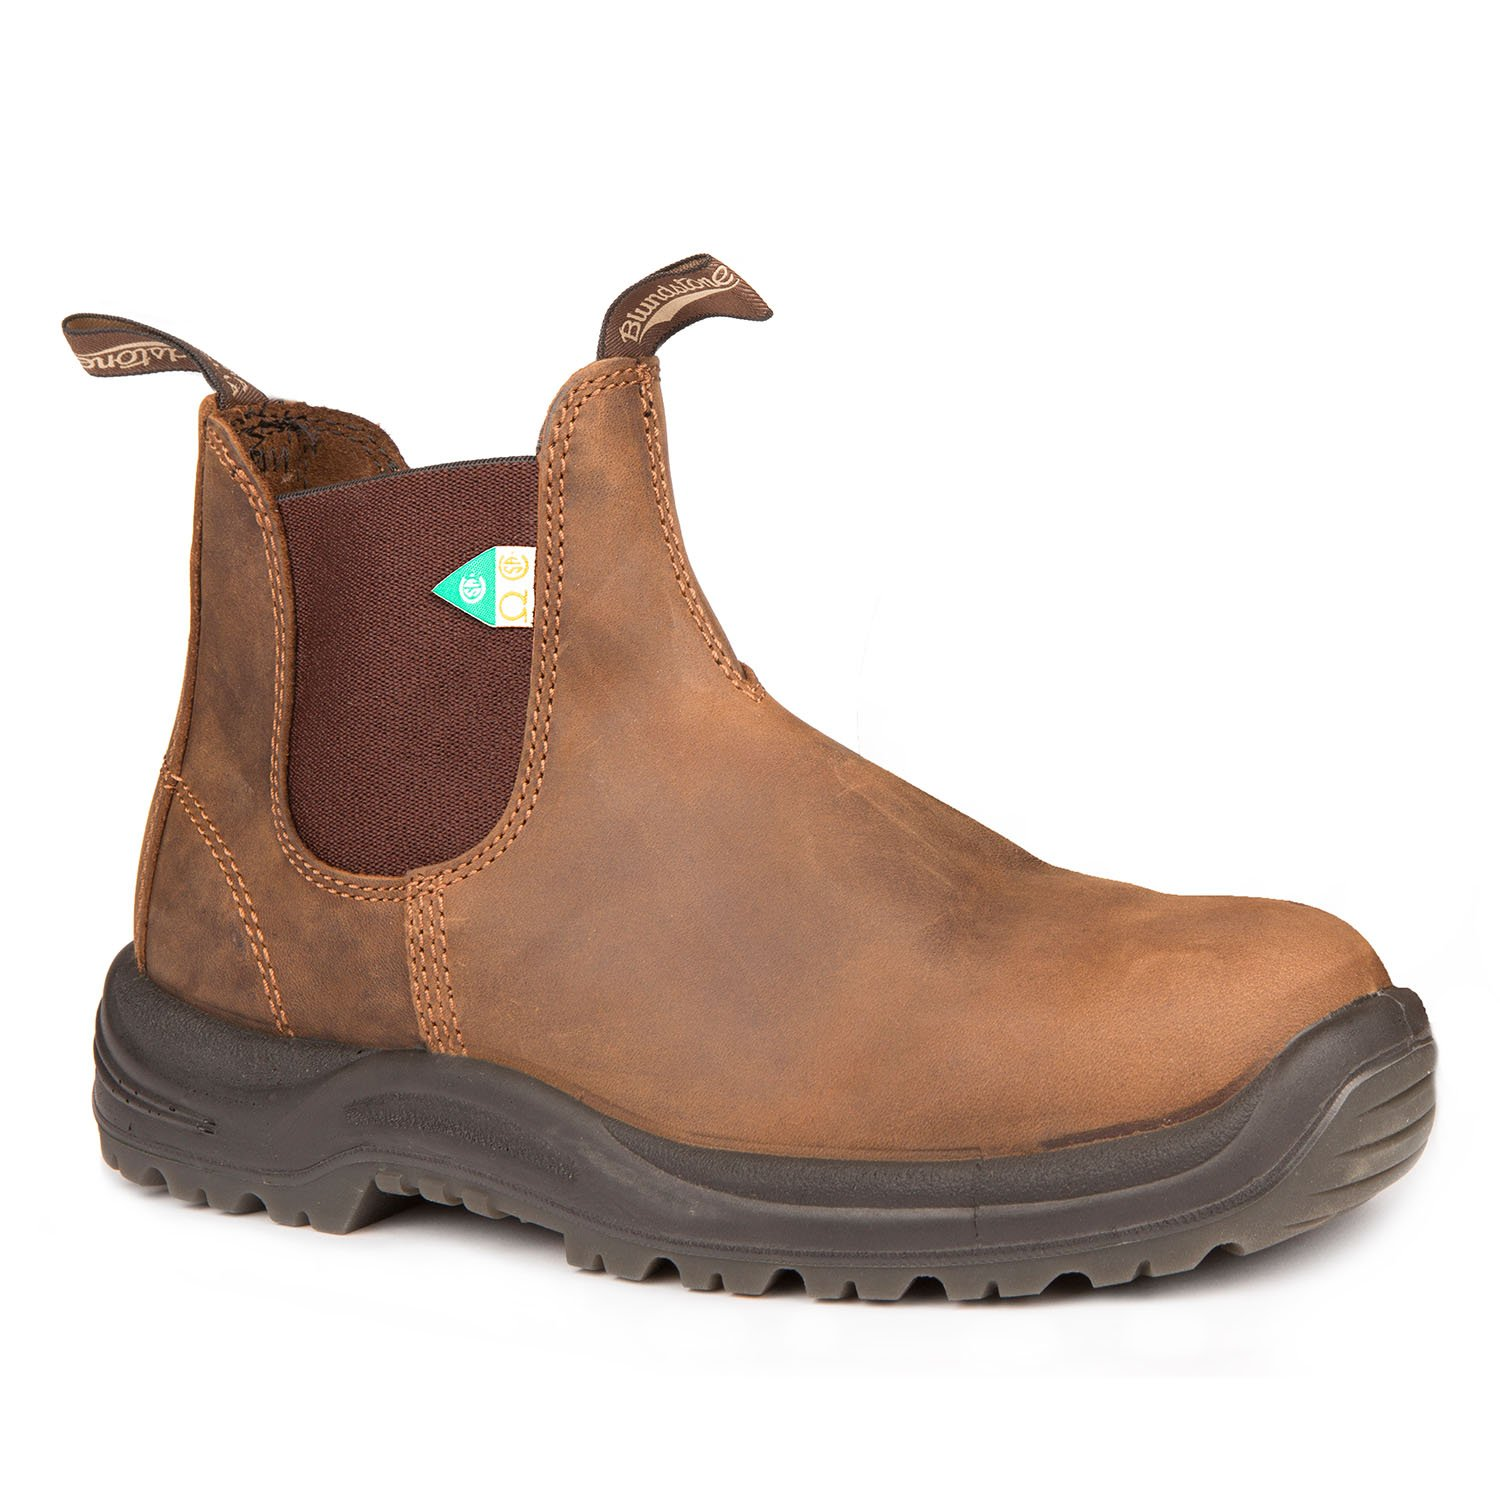 Blundstone 164 - Work & Safety Boot Crazy Horse Brown-Blundstone